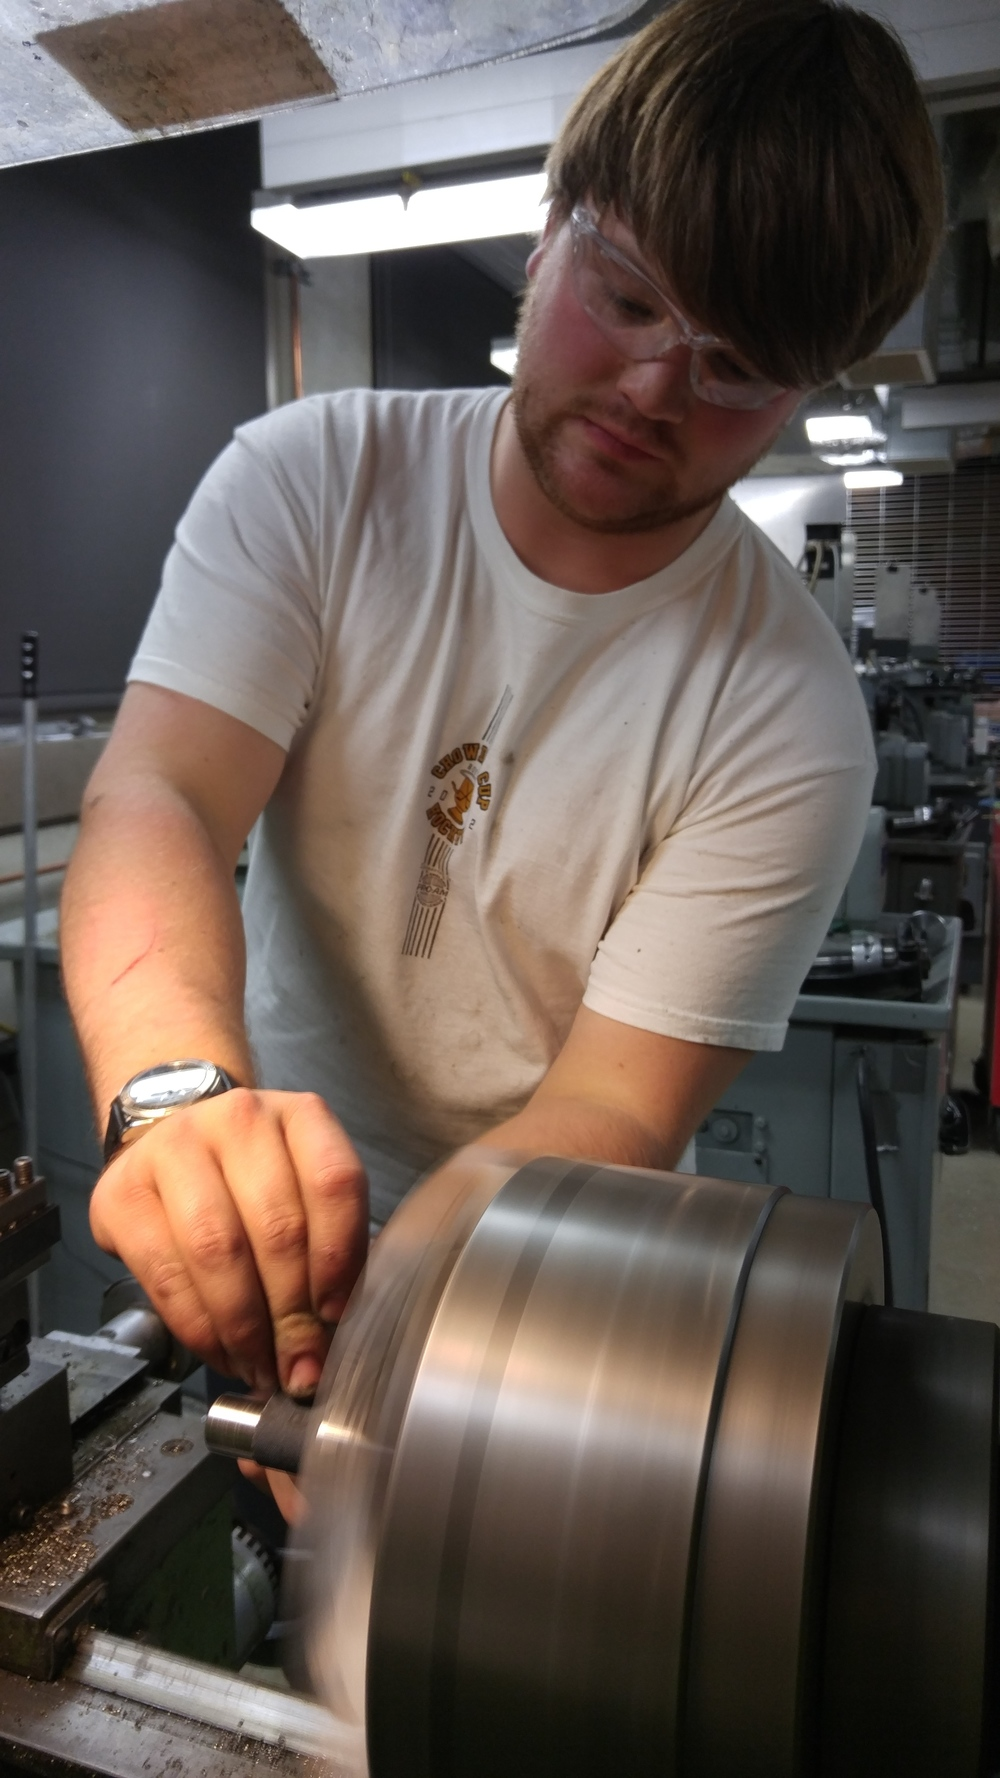 Luke fine-tuning a part on the lathe